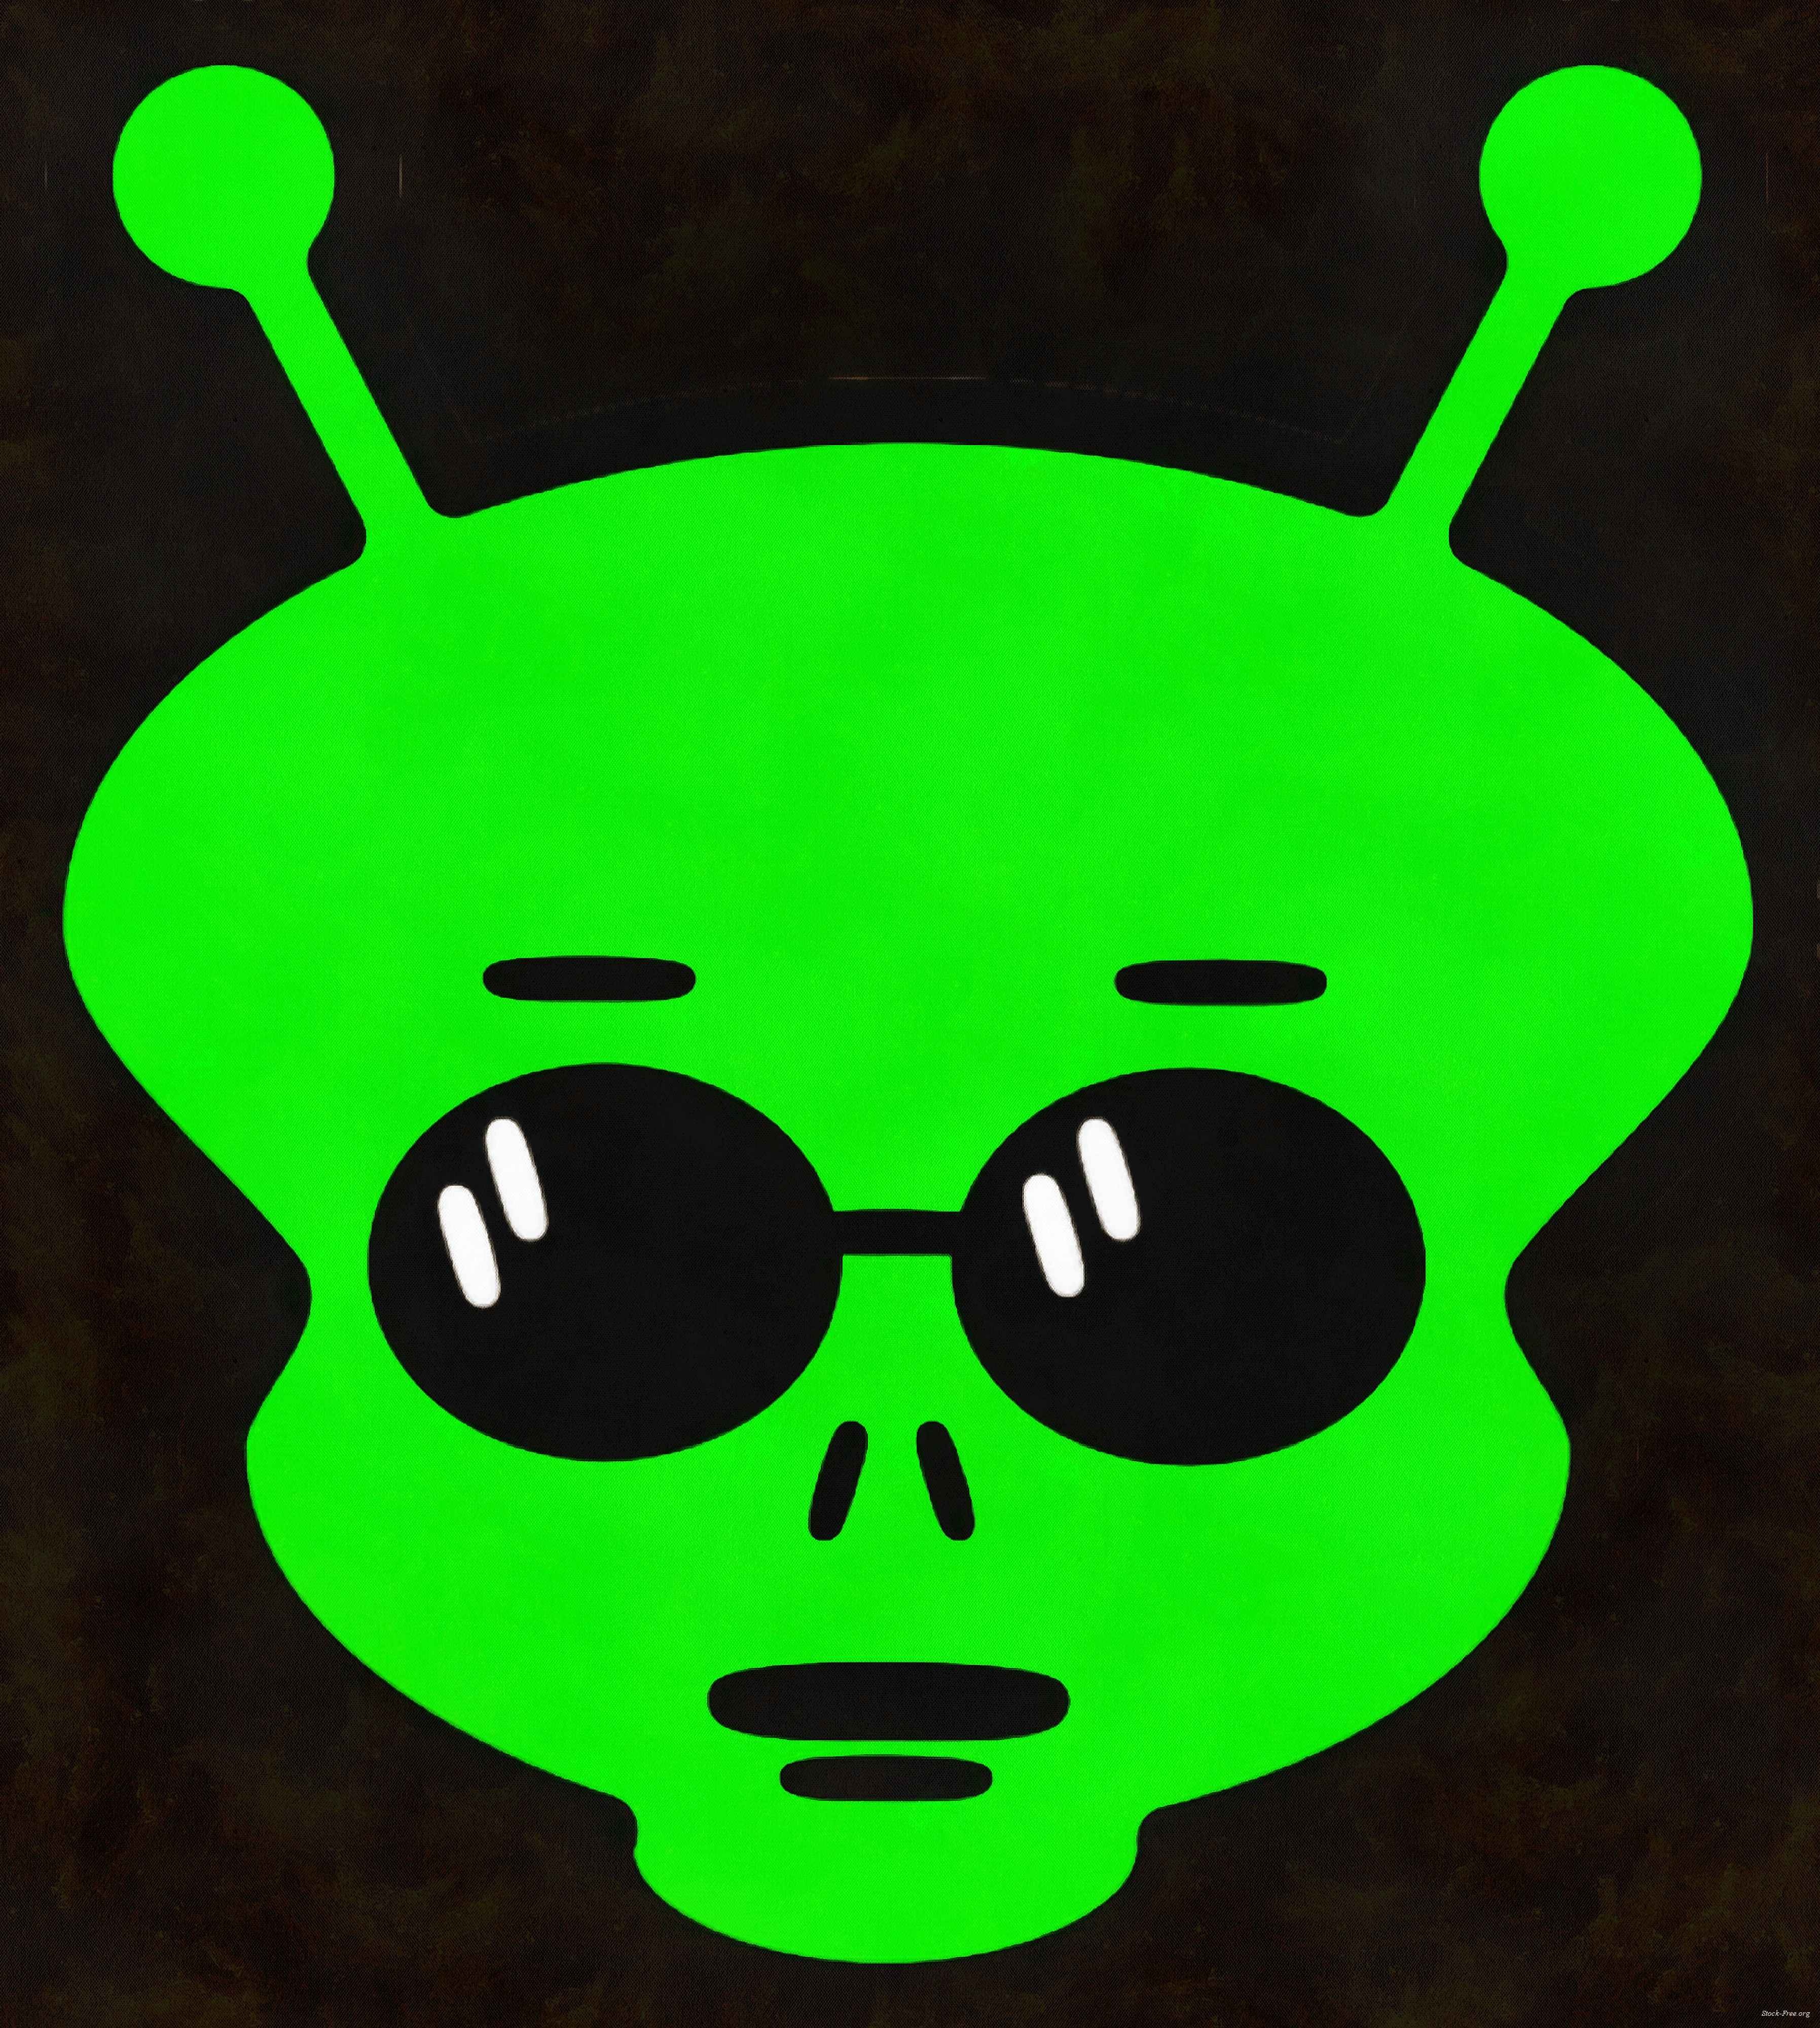 alien, green, green, man, alien, mask, halloween - halloween free image, free images, public domain images, stock free images, download image for free, halloween stock free images!<br>